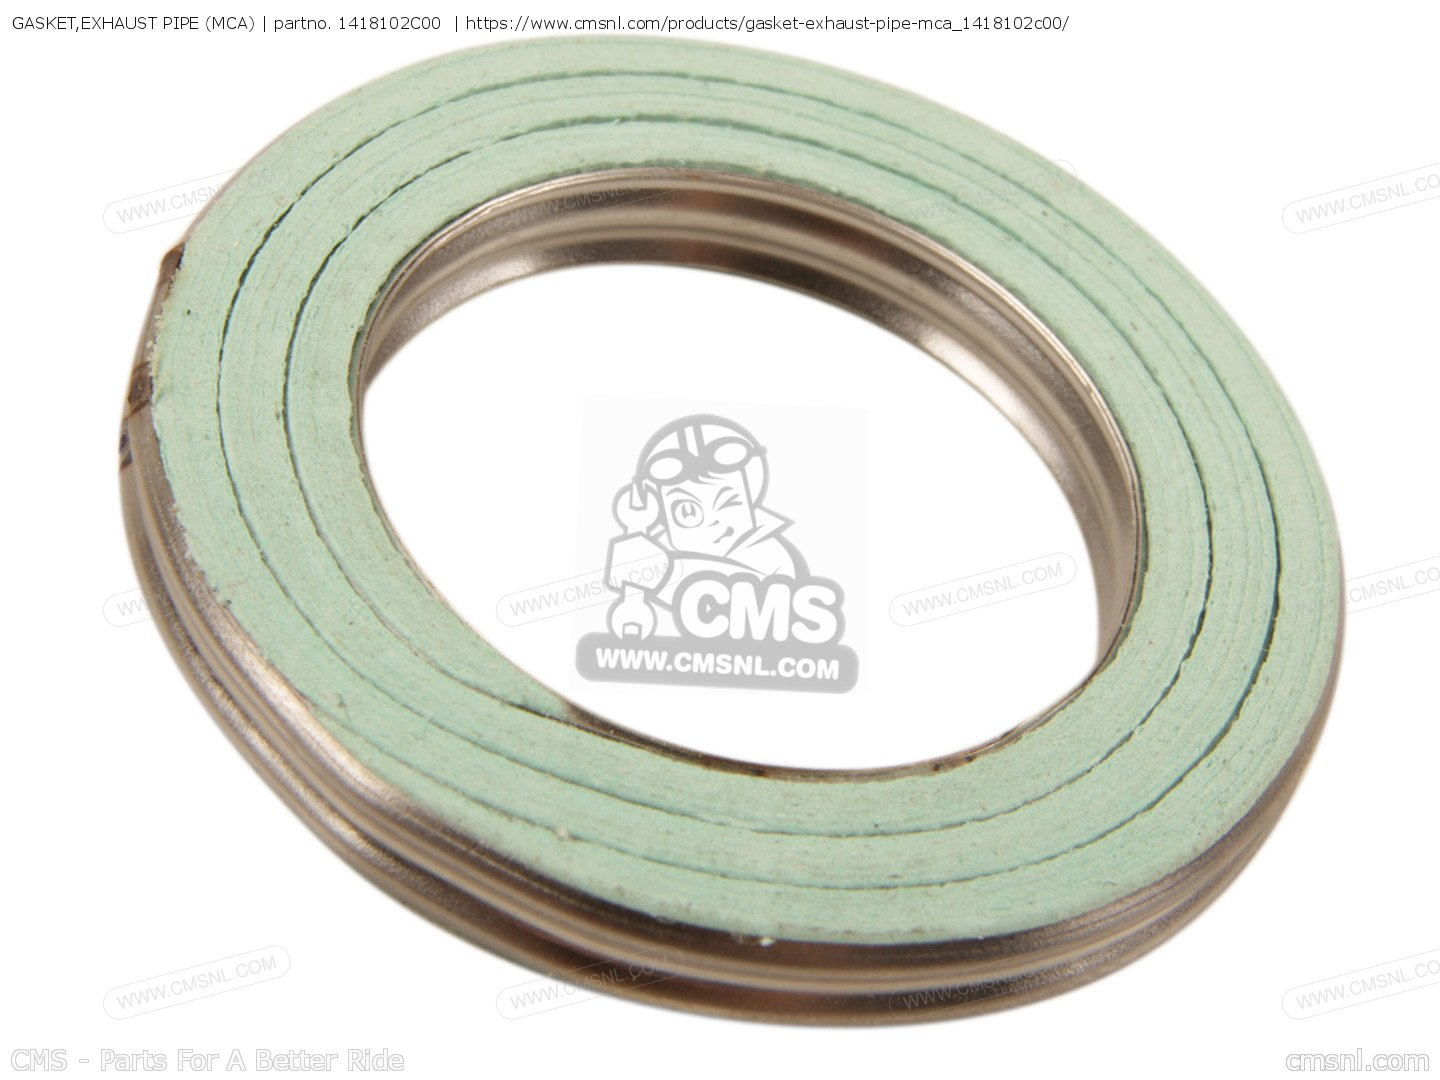 Caltric Muffler Gasket Compatible With Yamaha 3Jj-14653-00-00 1L9-14714-01-00 47G-14653-00-00